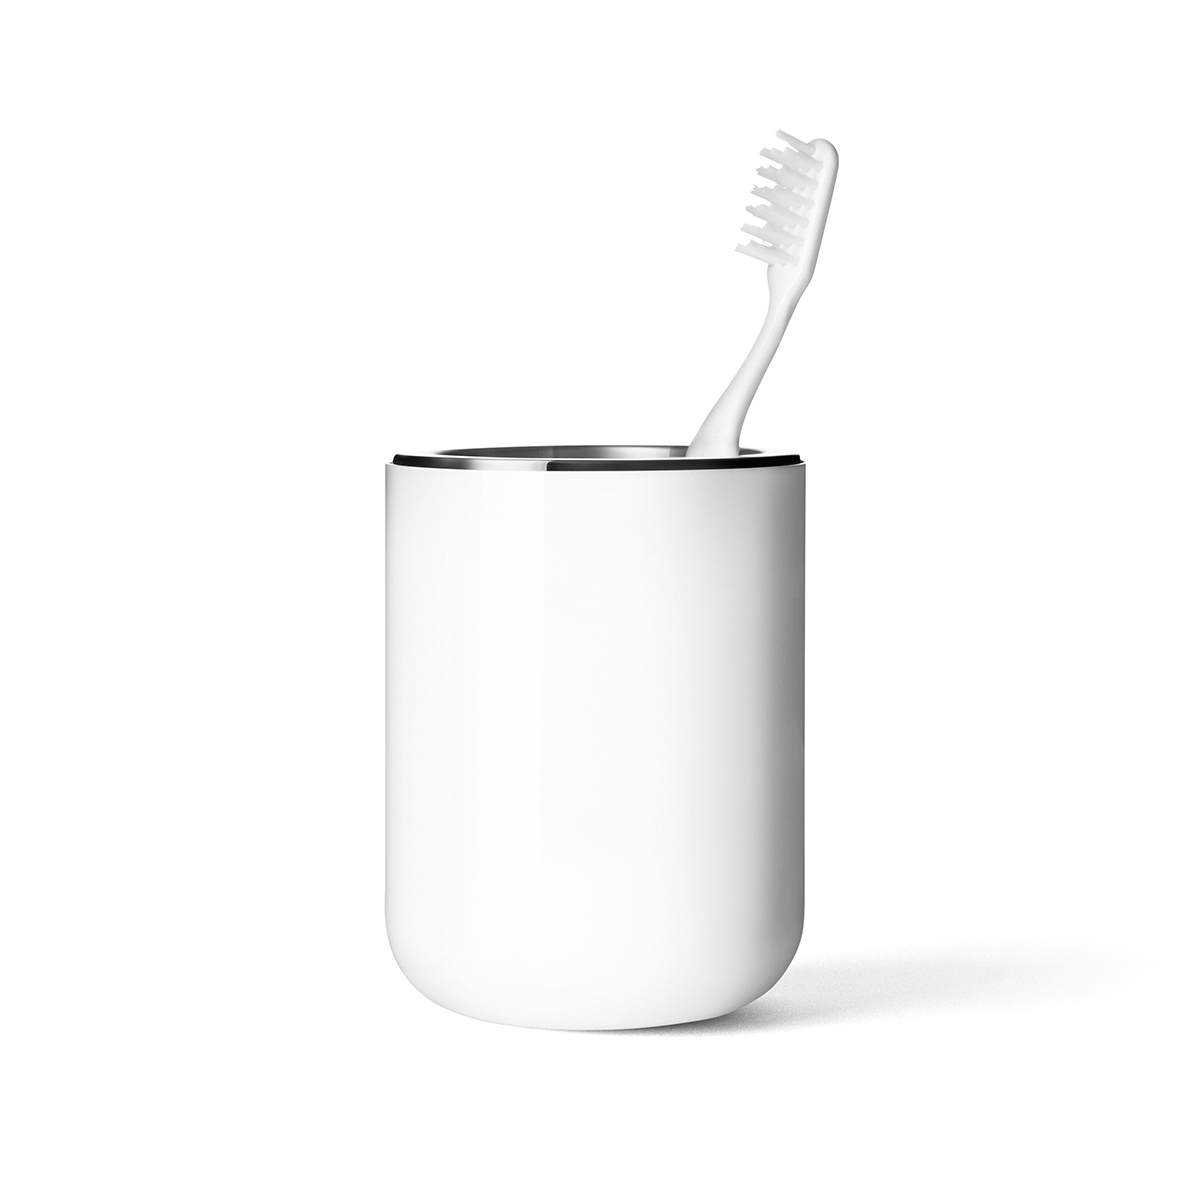 Menu Toothbrush Holder, Norm 衛浴系列 牙刷杯